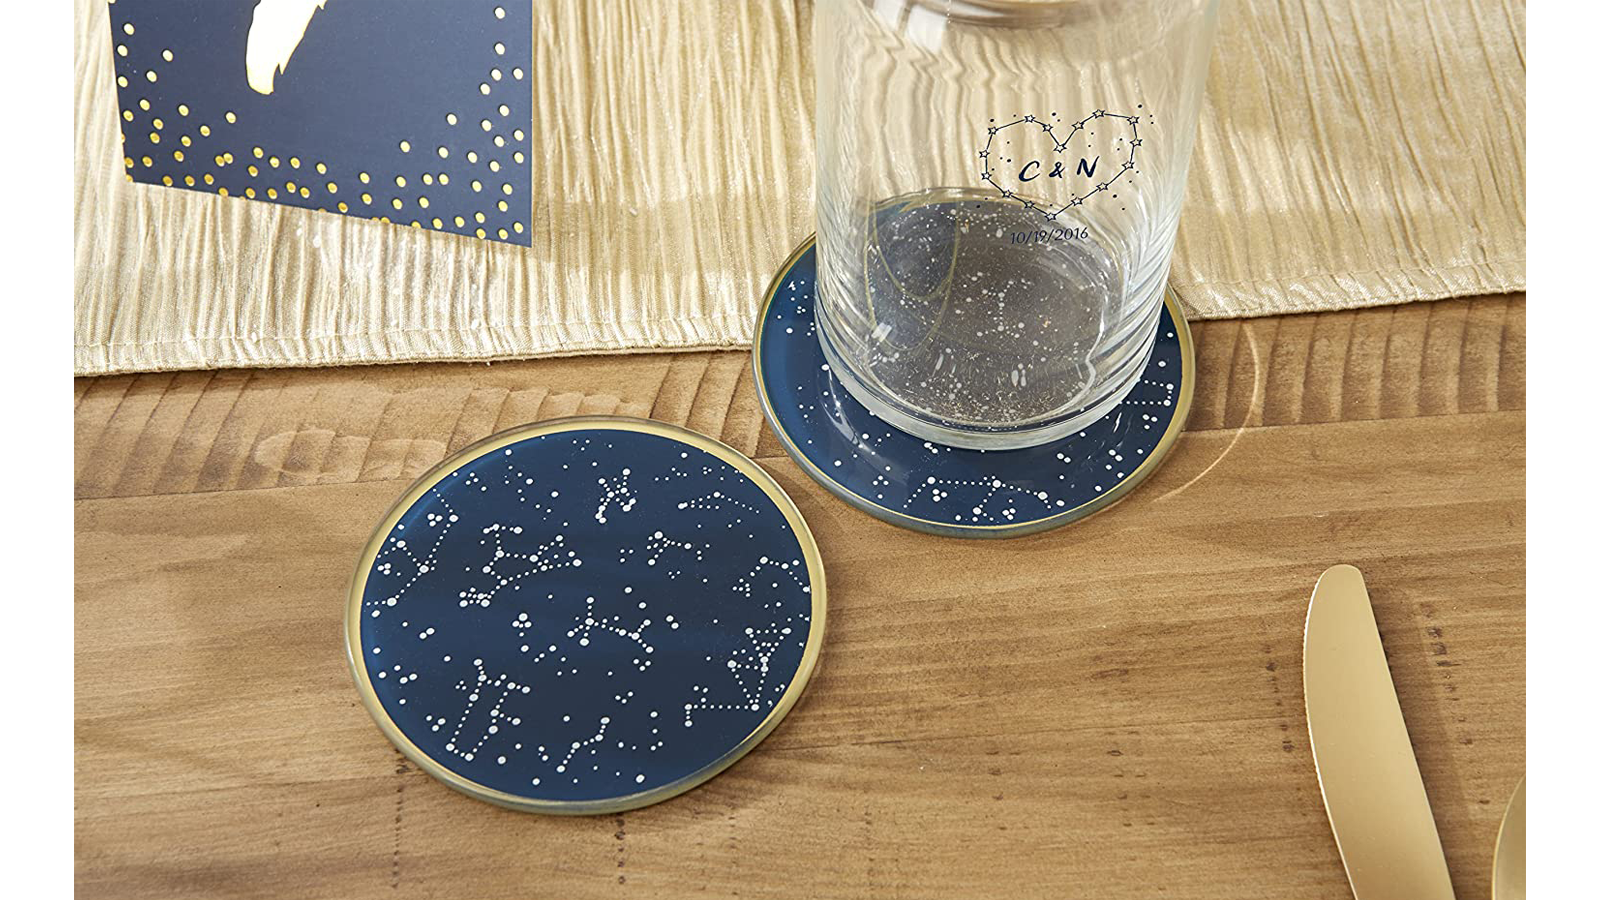 Gold, white, and navy blue coasters with gold rim set on table with a cup